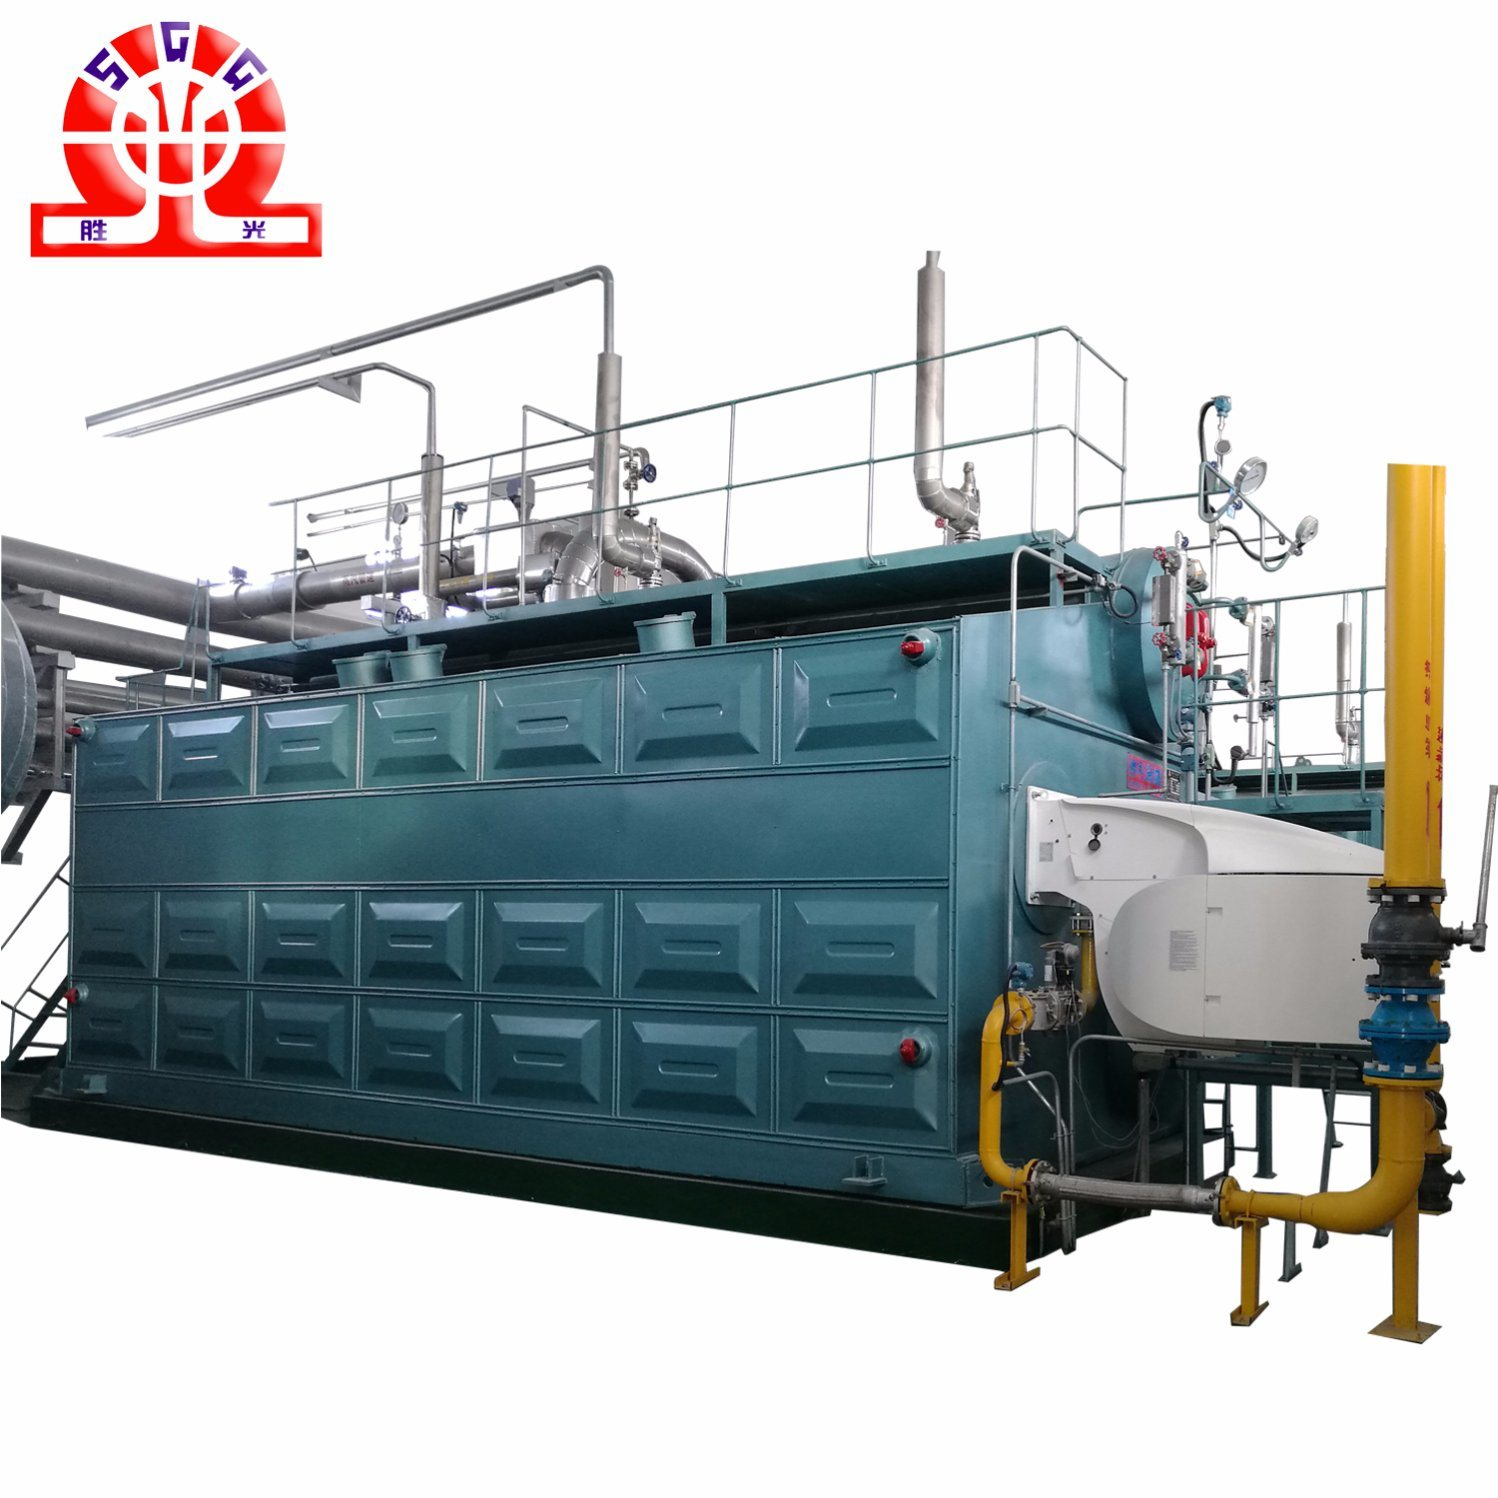 China Automatic Steam Boiler with Oil Fuel - China Oil Fired Steam ...